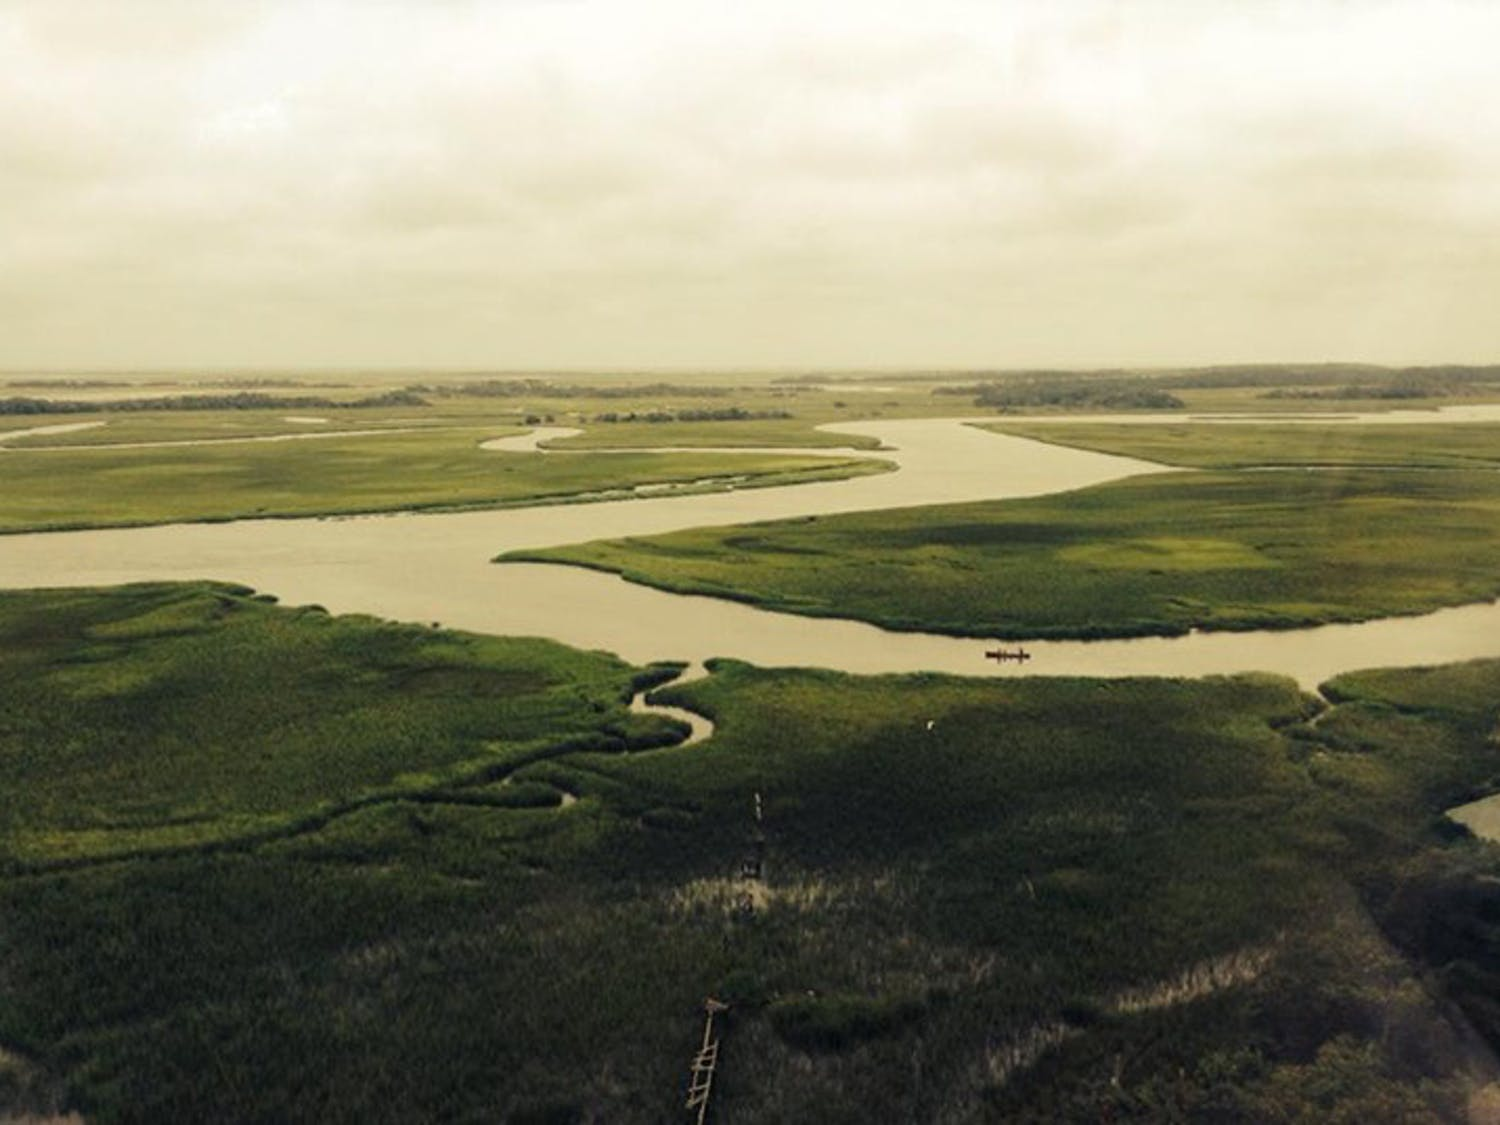 This is the view of the rivers and marshes of Bald Head Island in North Carolina.